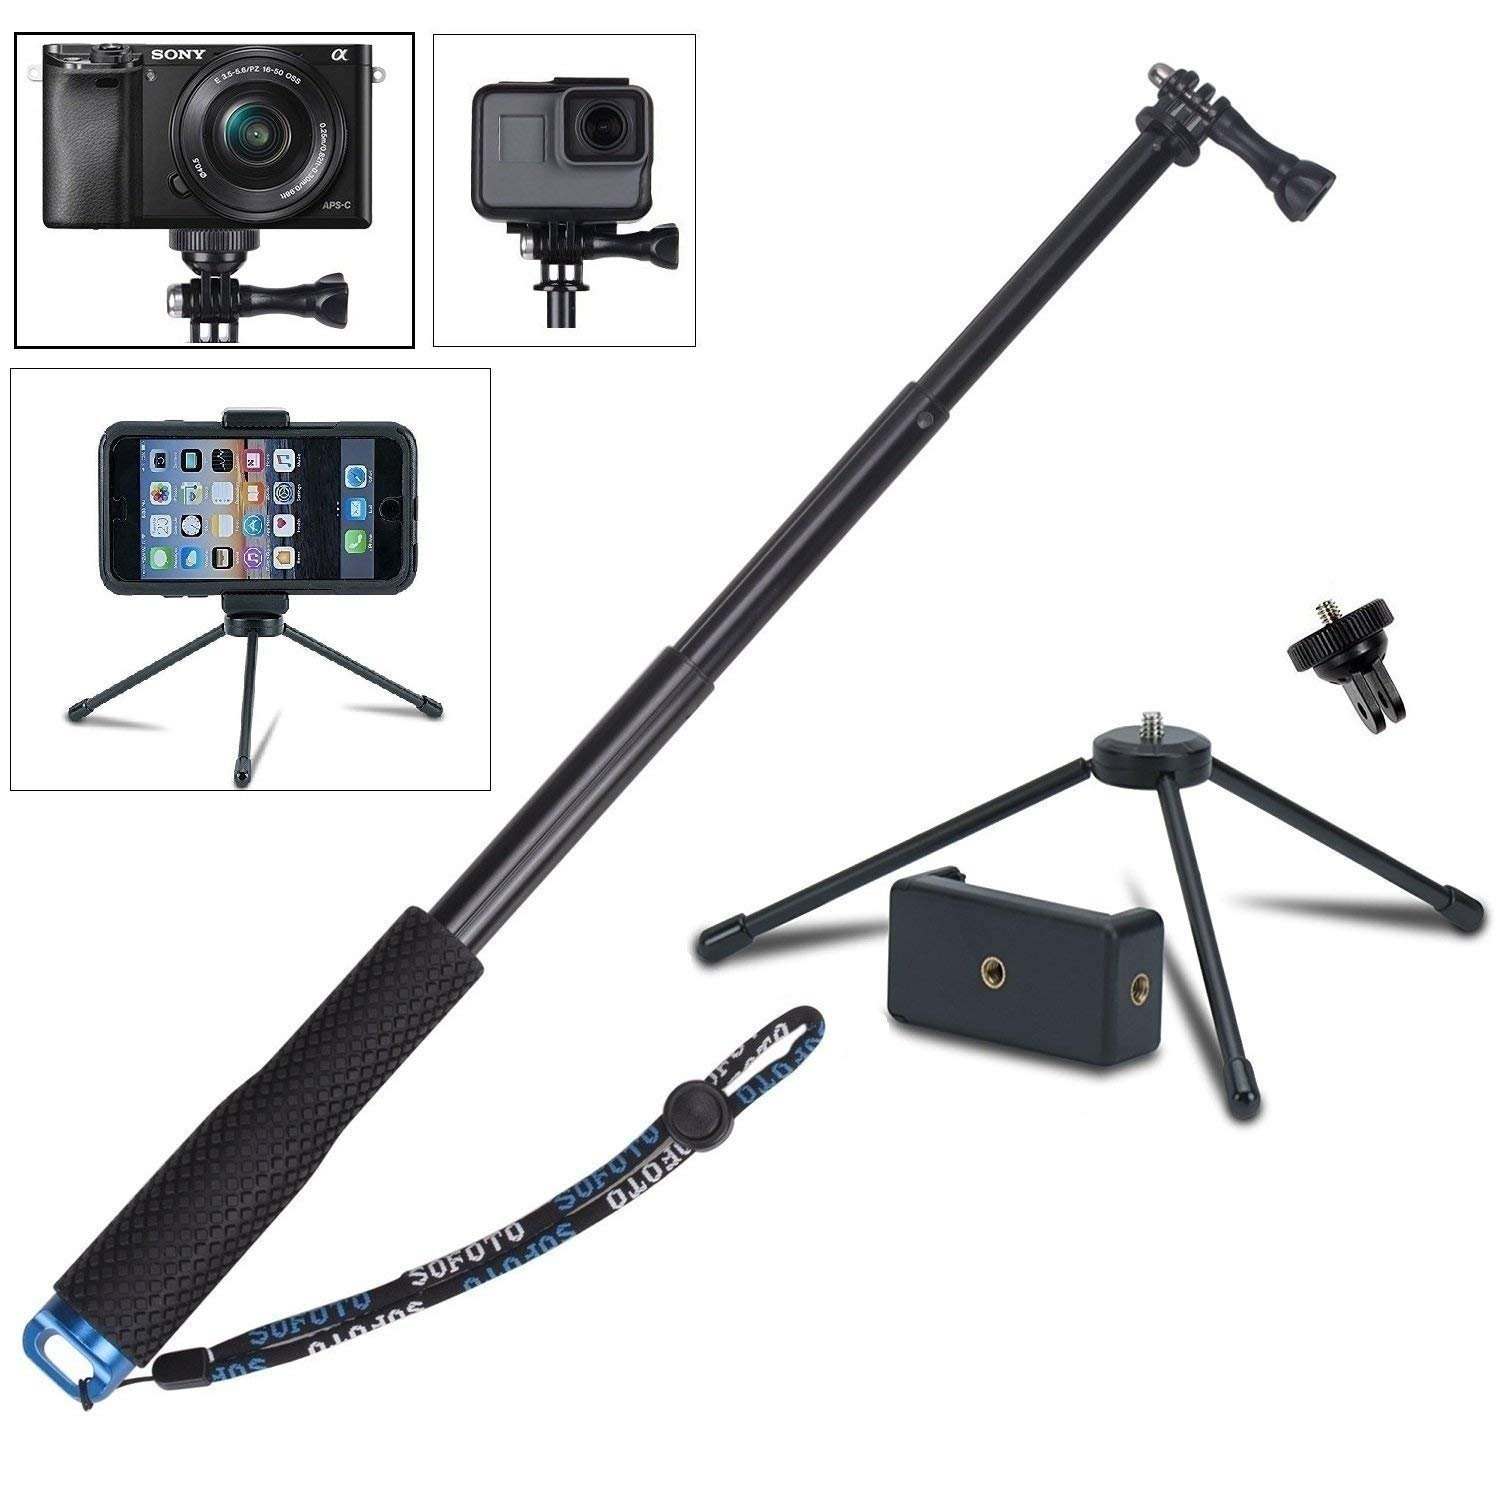 VVHOOY 43 inch Waterproof Action Camera Selfie Stick with Tripod Monopod Stand and CellPhone Holder for GOPRO HERO 6/5/XIAOMI YI/AKASO EK7000/Wewdigi/GooBang Doo/APEMAN 4K Sports Action Camera, Smartphones, and More